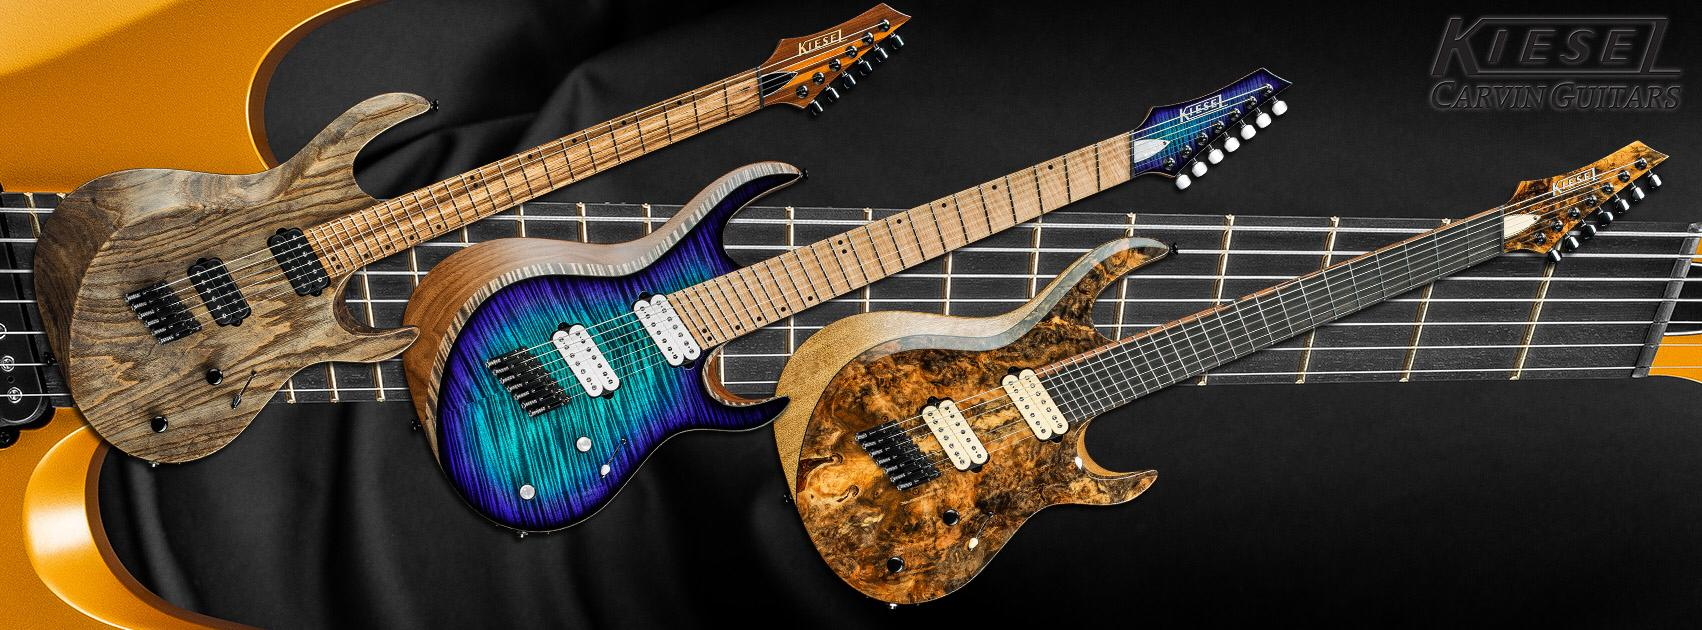 Image courtesy of Kiesel/Carvin Guitars